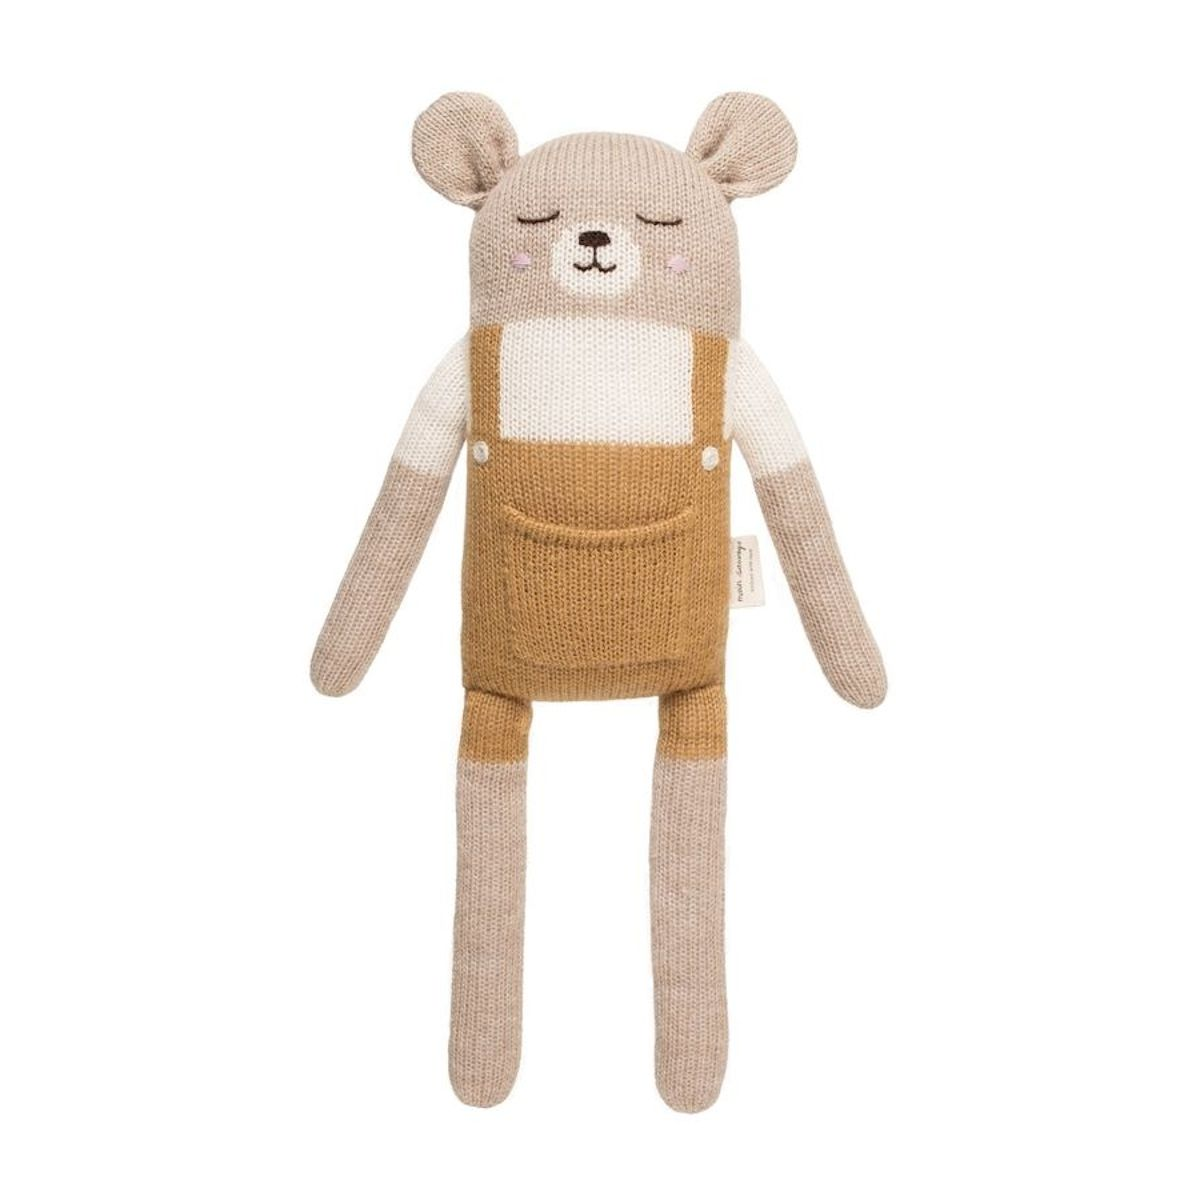 Main Sauvage - Big Teddy Soft Toy With Mustard Shorts - 1